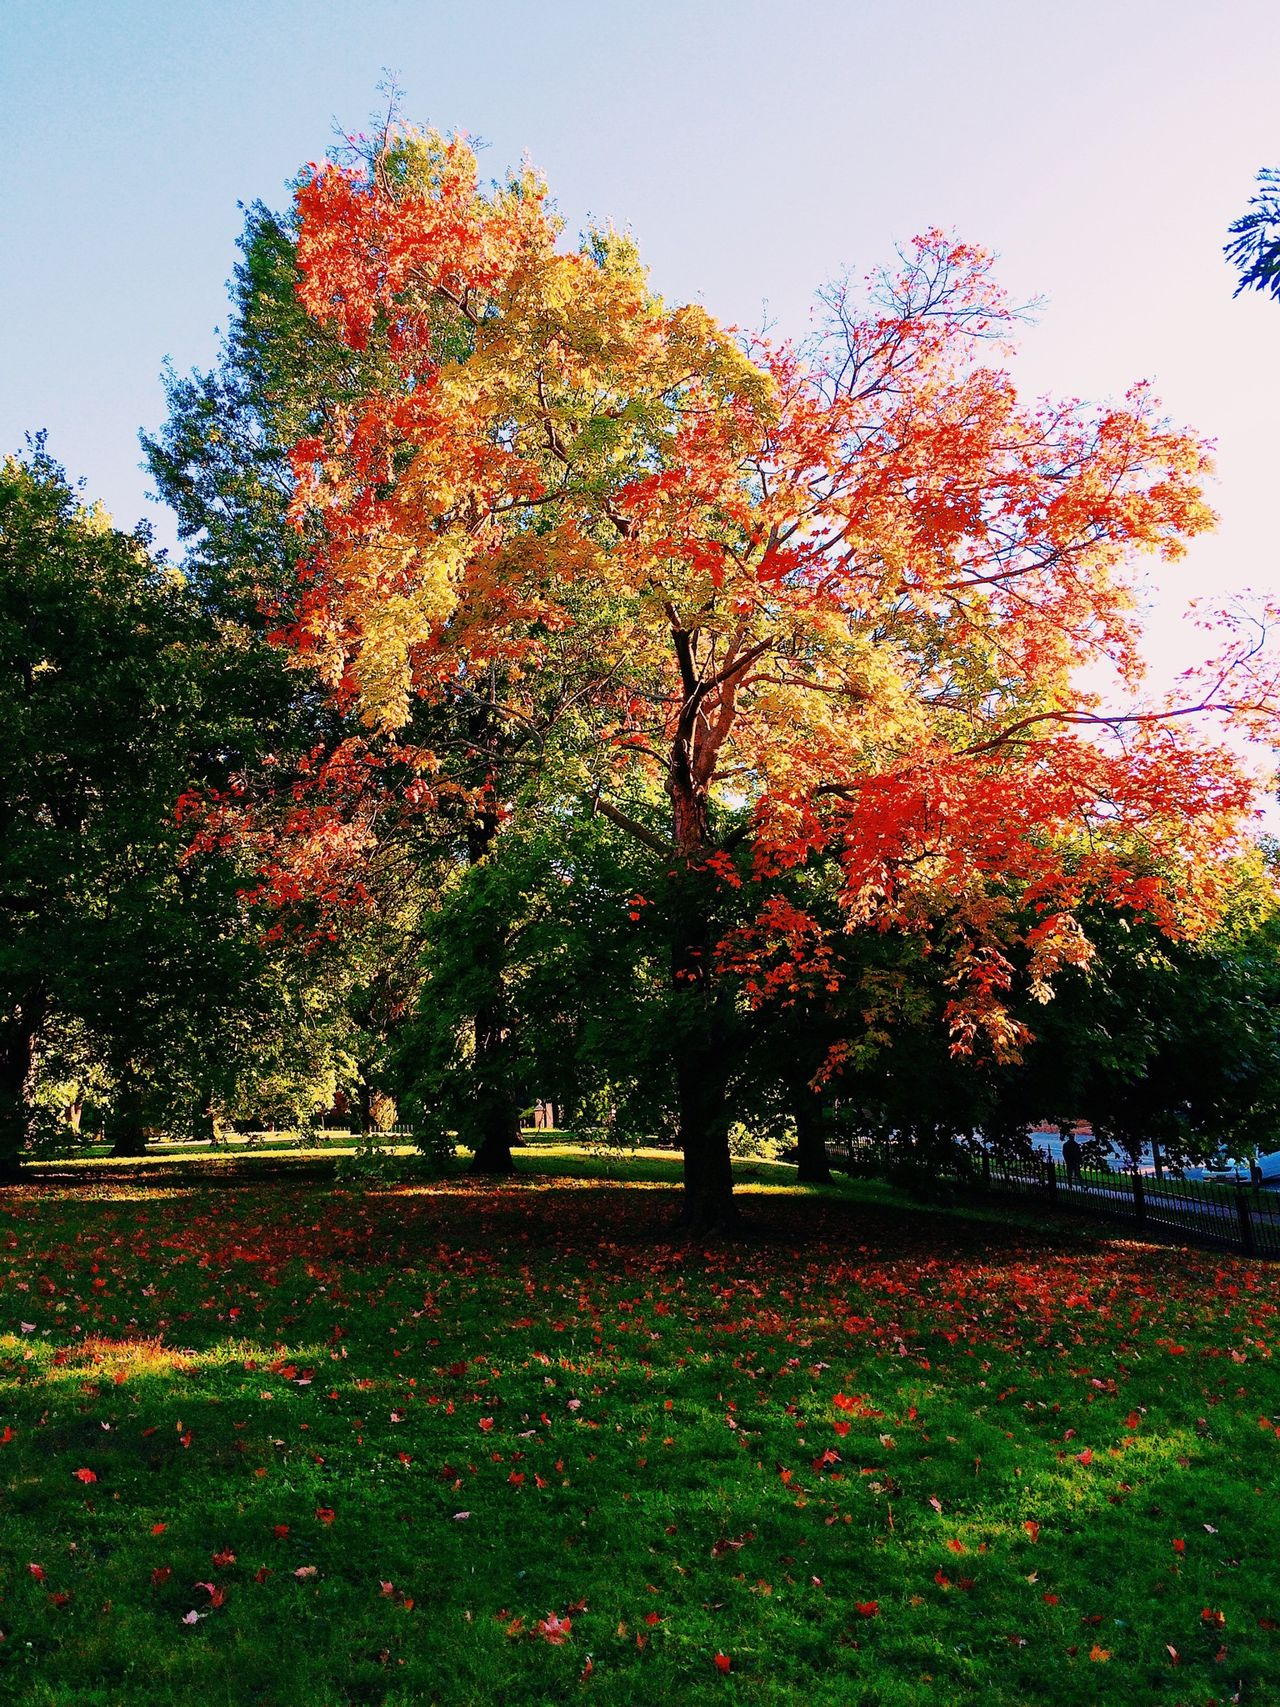 Beautiful stock photos of park, Autumn, Day, Grass, Lush Foliage